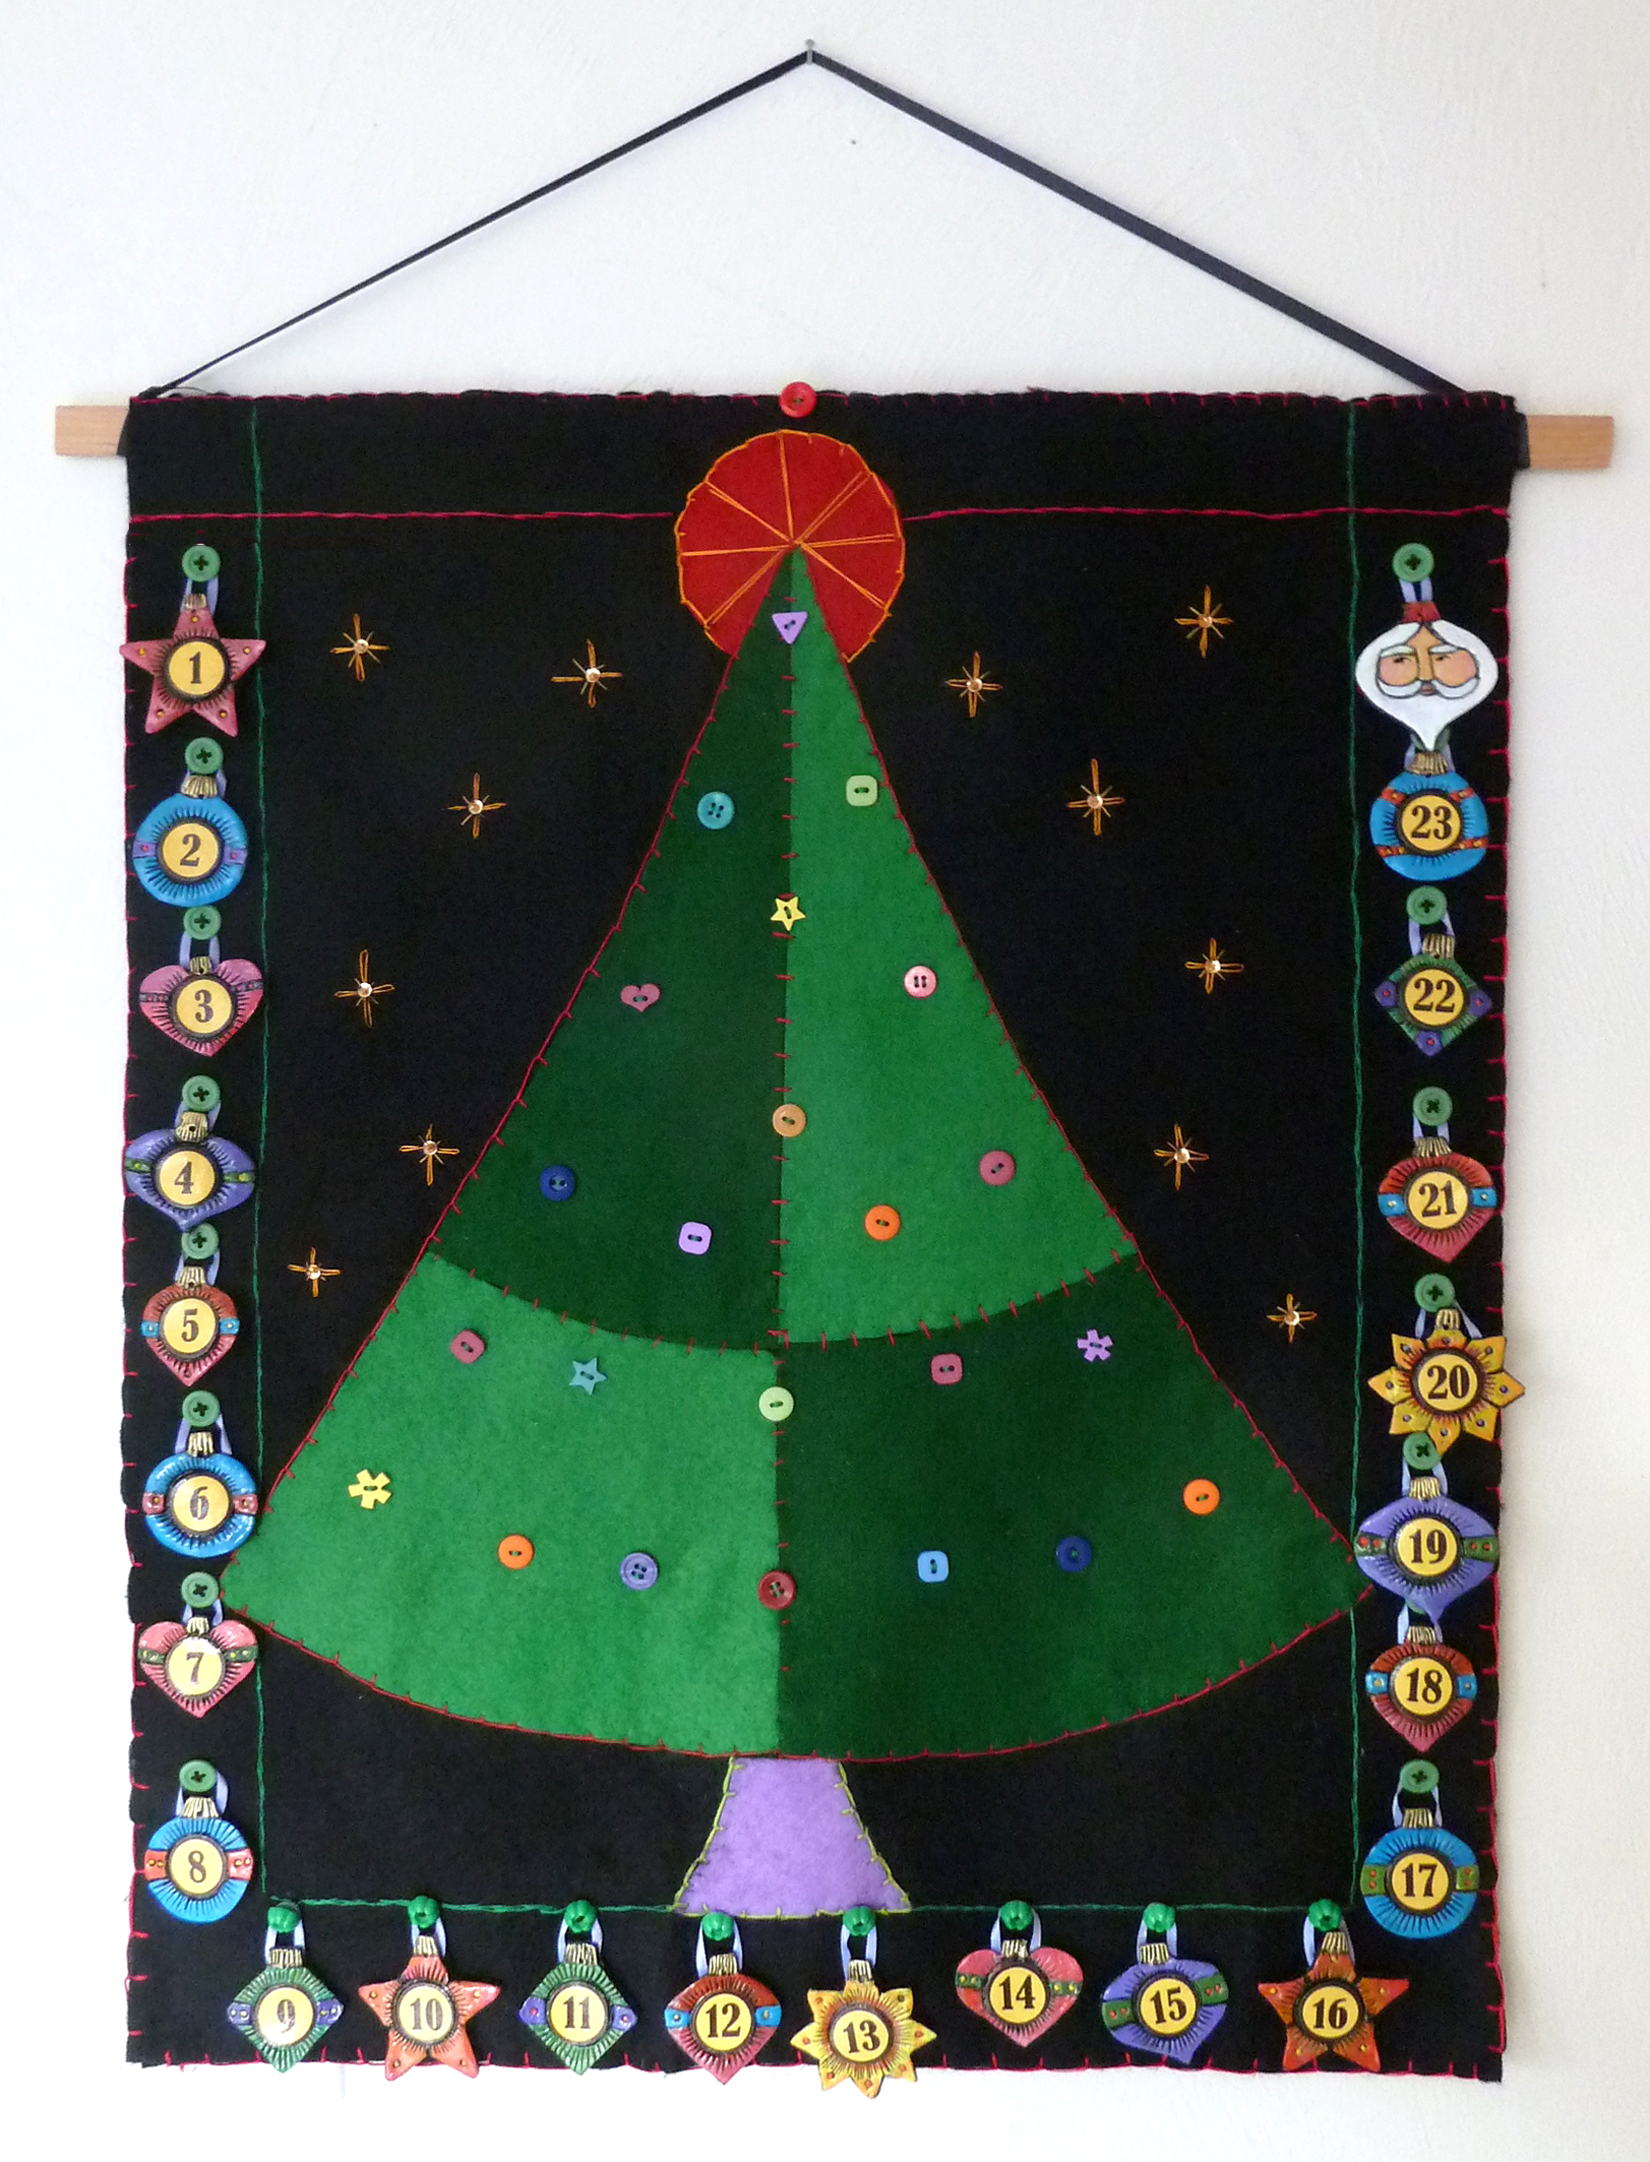 Ornaments hang around the outside to make a border.